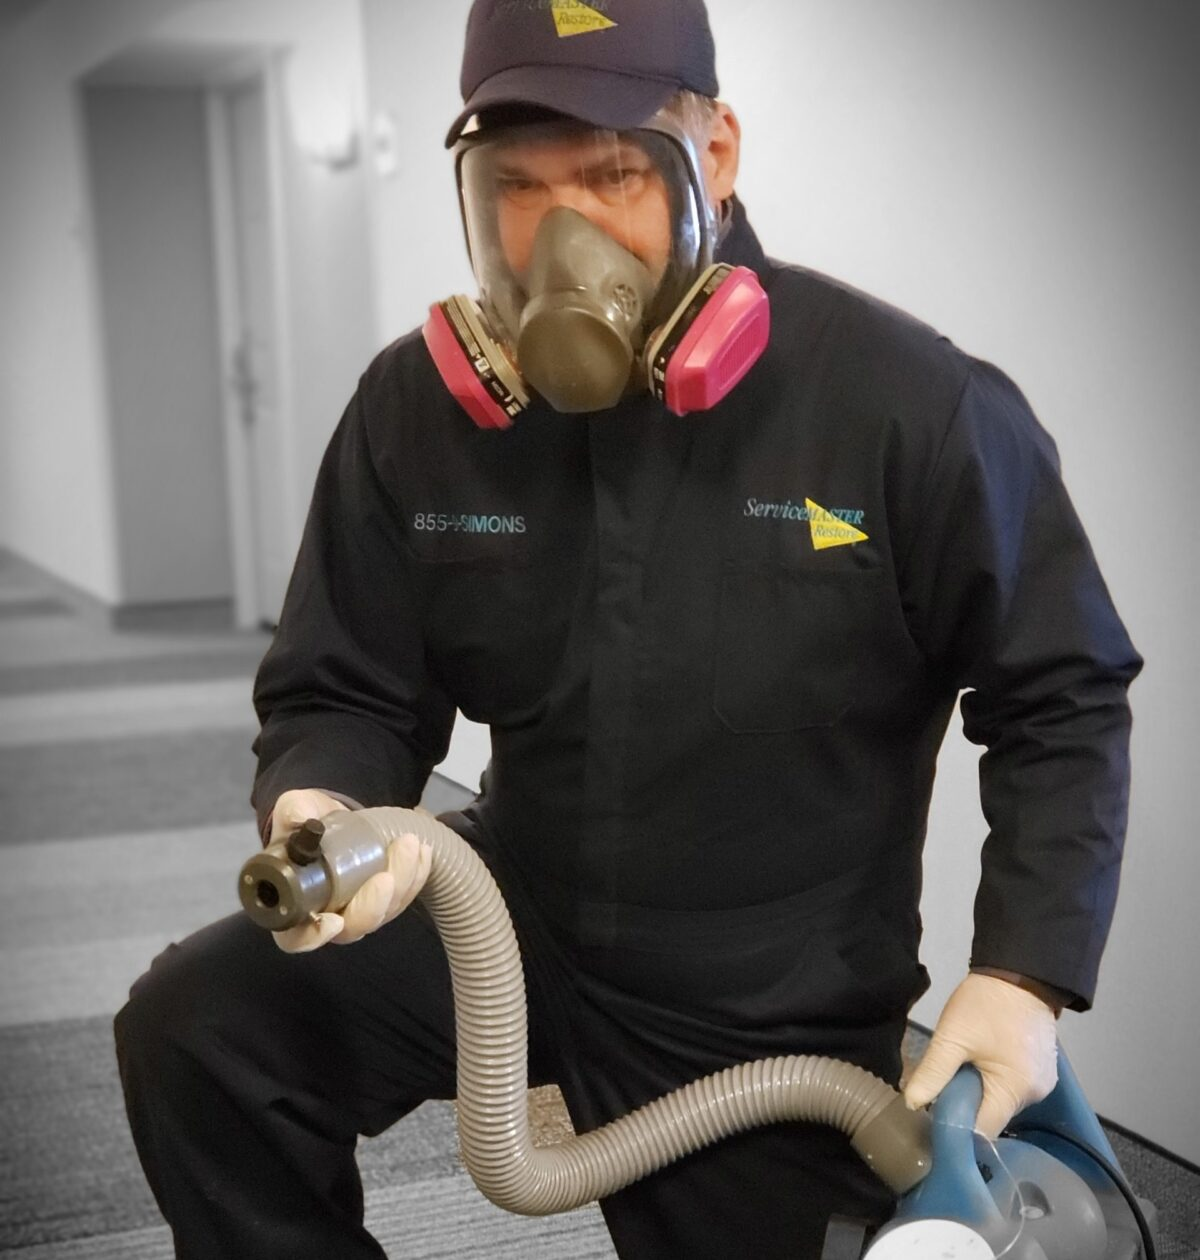 ServiceMaster Restoration By Simons COVID-19 Reentry Cleaning & Disinfecting Services Featured on NBC News